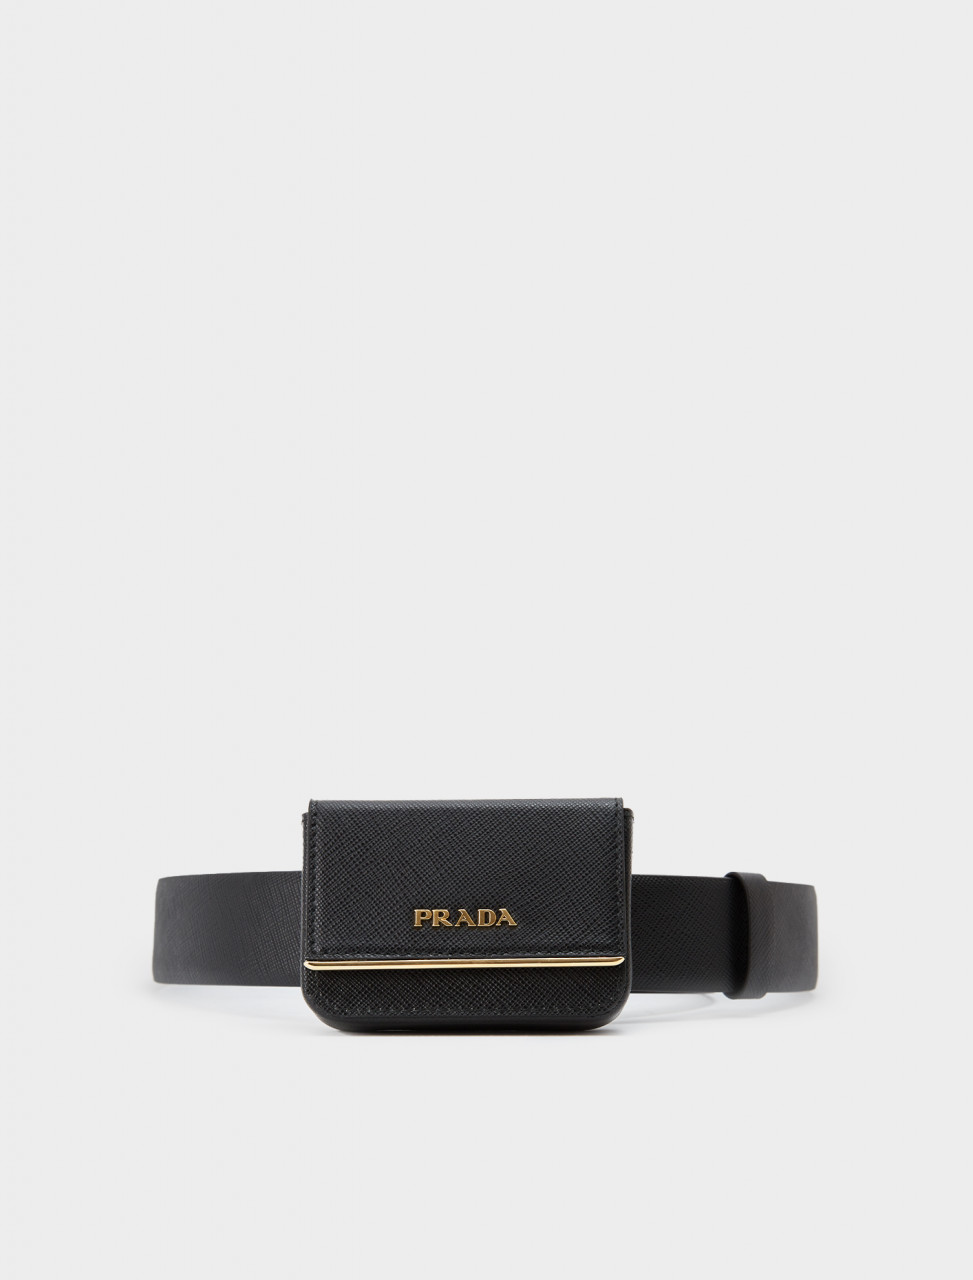 242-1CC492-2DL0-F0002 PRADA CINTURE BAG BELT BLACK